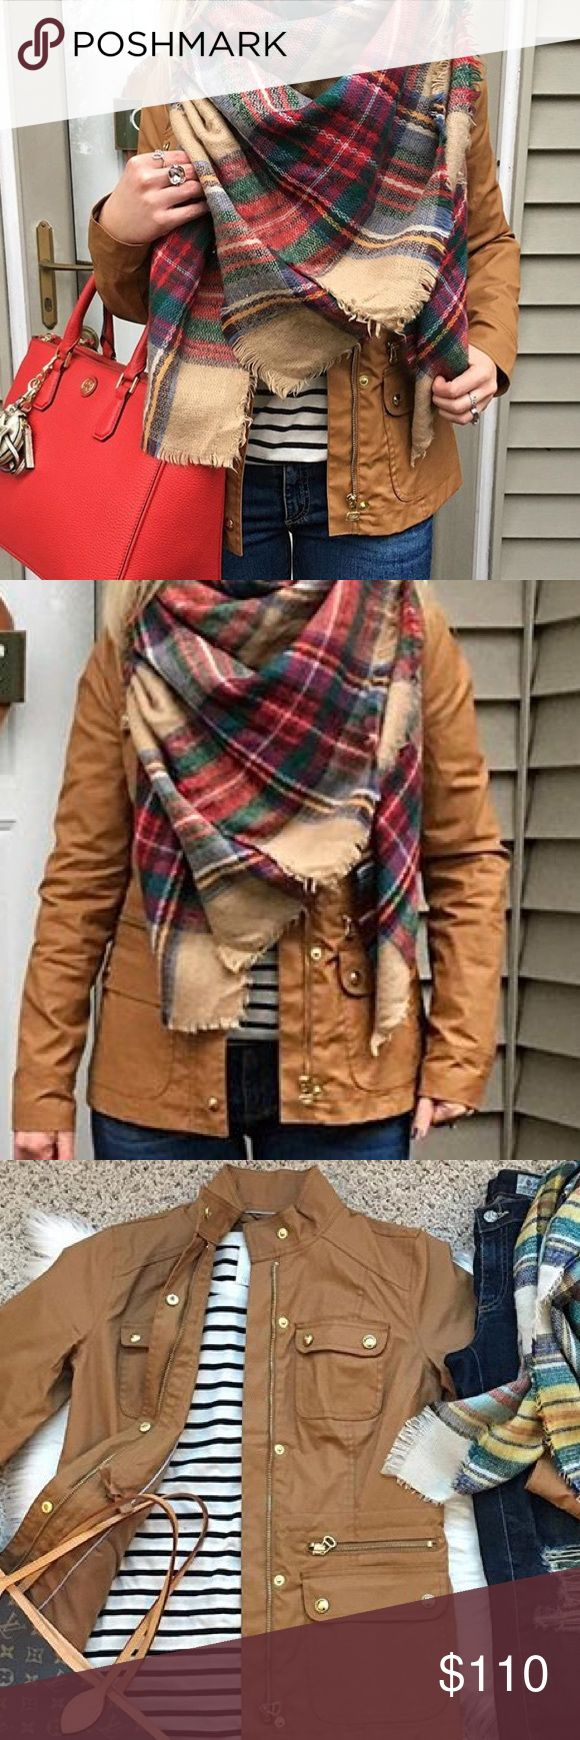 Tommy Hilfiger women's utility jacket NWOT! Tommy Hilfiger Womens Utility Jacket Tommy Hilfiger women's jacket. Equally suited for urban adventures as the great outdoors, our updated field jacket is chicer than ever with gold hardware and a trimly tailored fit. Coated cotton construction keeps you stylishly shielded from the elements.  Body:100% Cotton. Lining: 100% Polyester Zip and snap closure.  Machine washable. Imported Color: Tobacco Brown Size: M Tommy Hilfiger Jackets & Coats Utility…